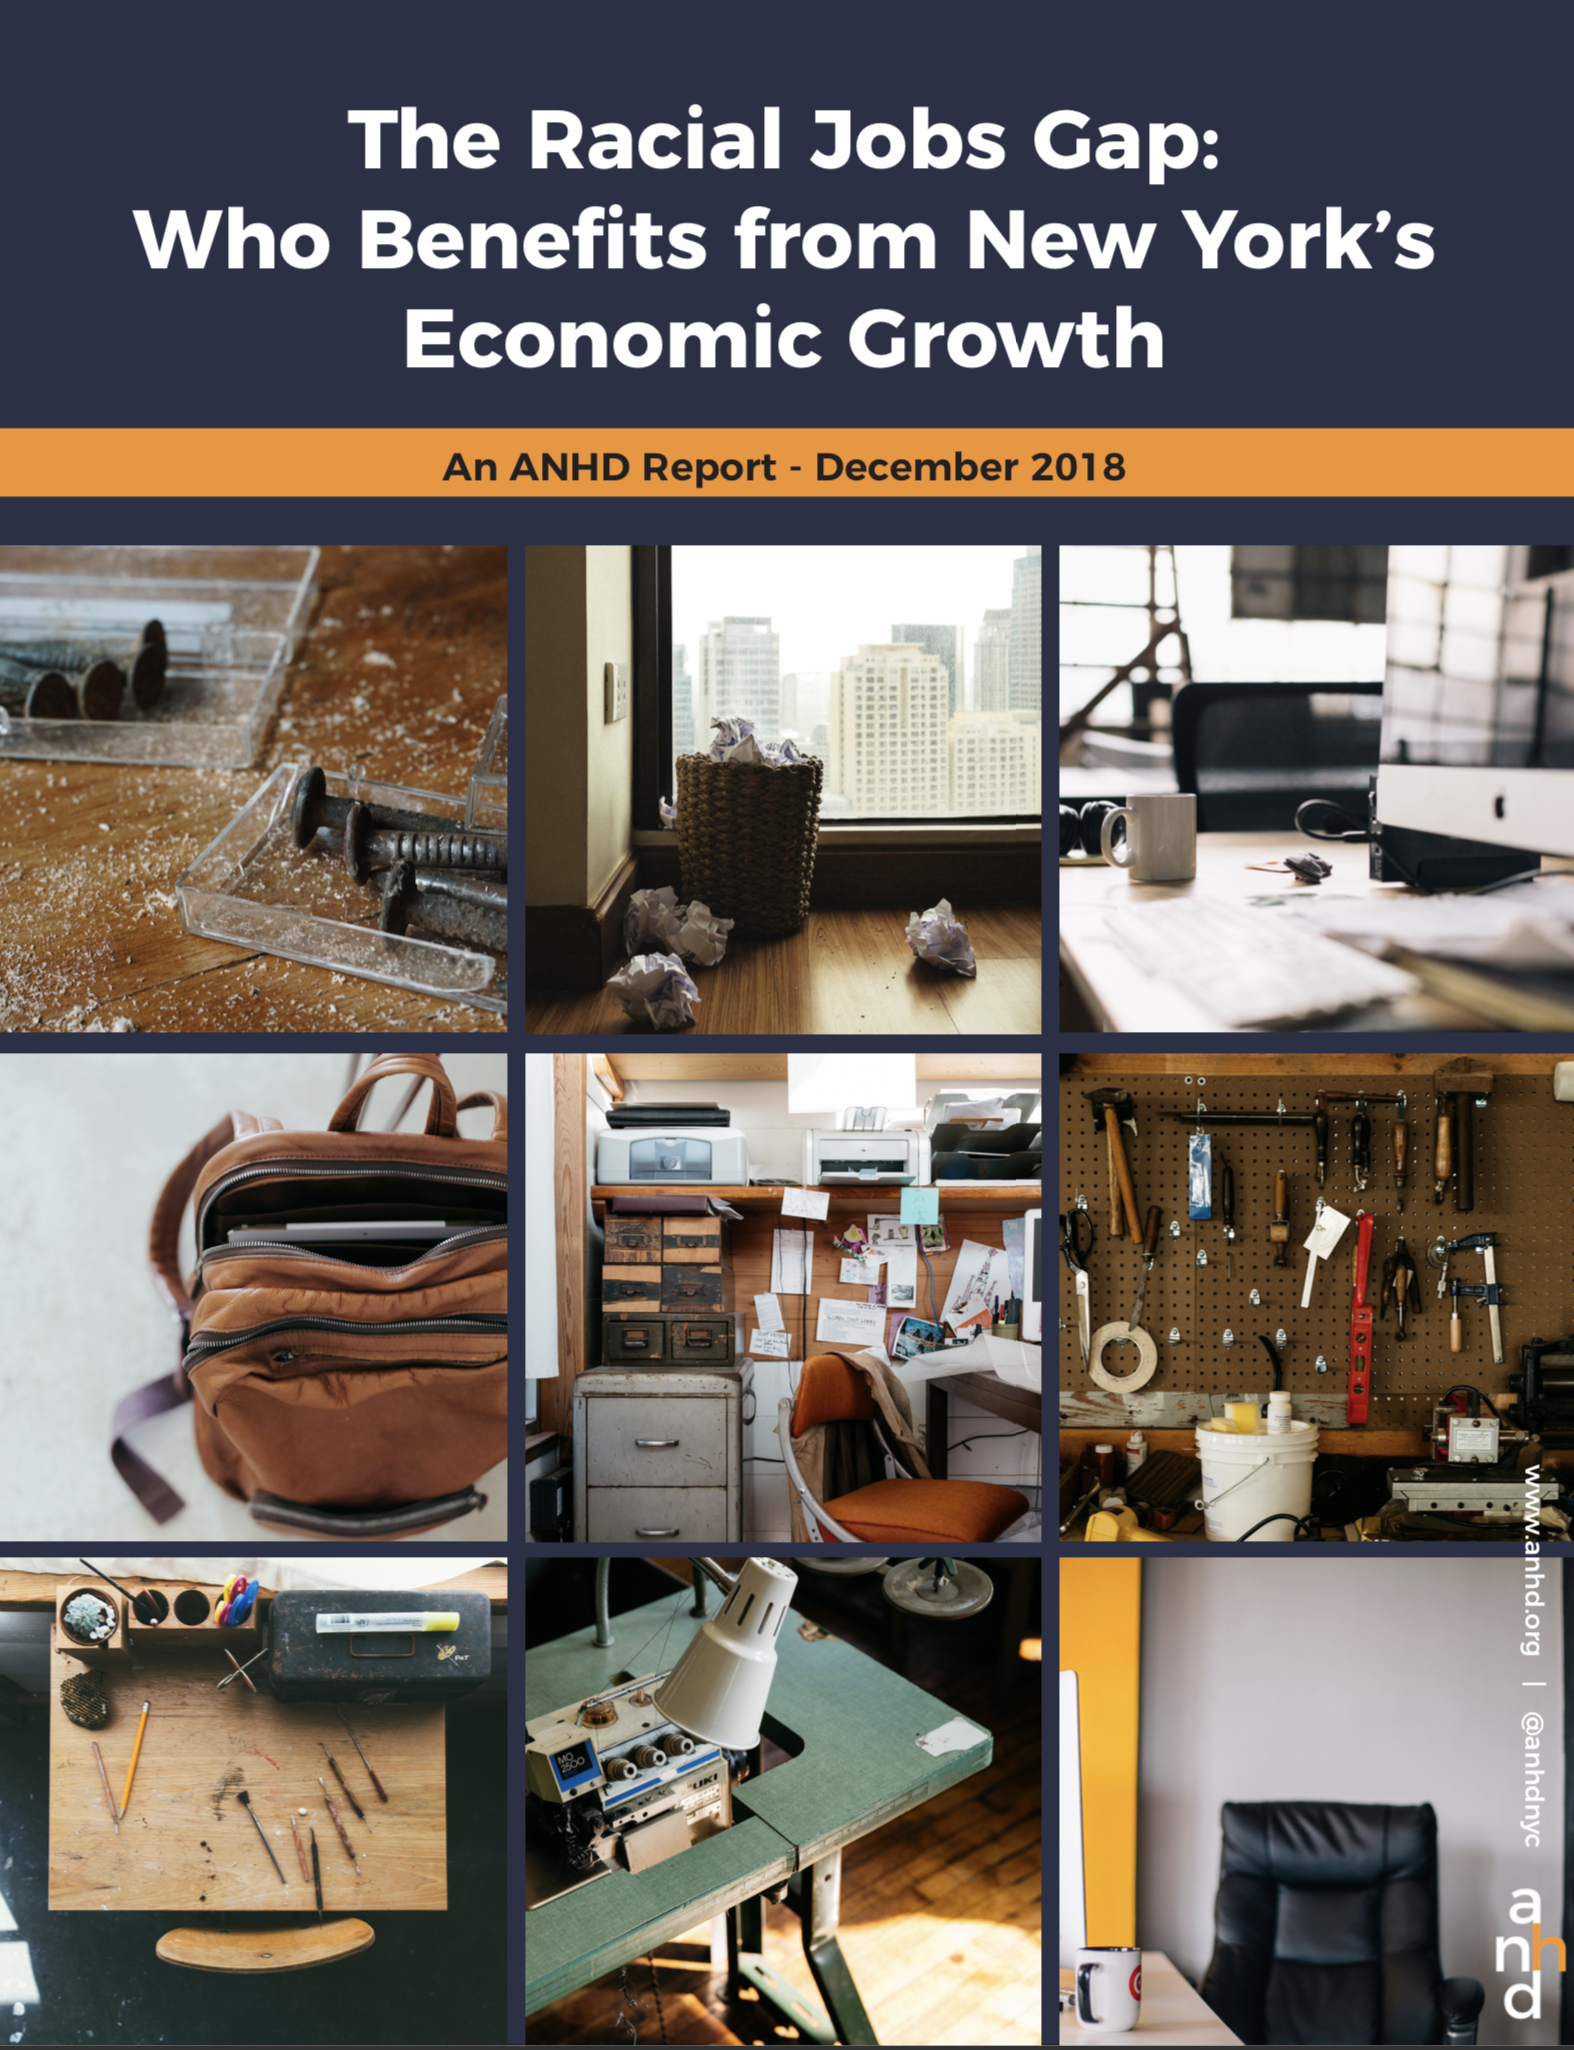 The Racial Jobs Gap: Who Benefits from New York's Economic Growth